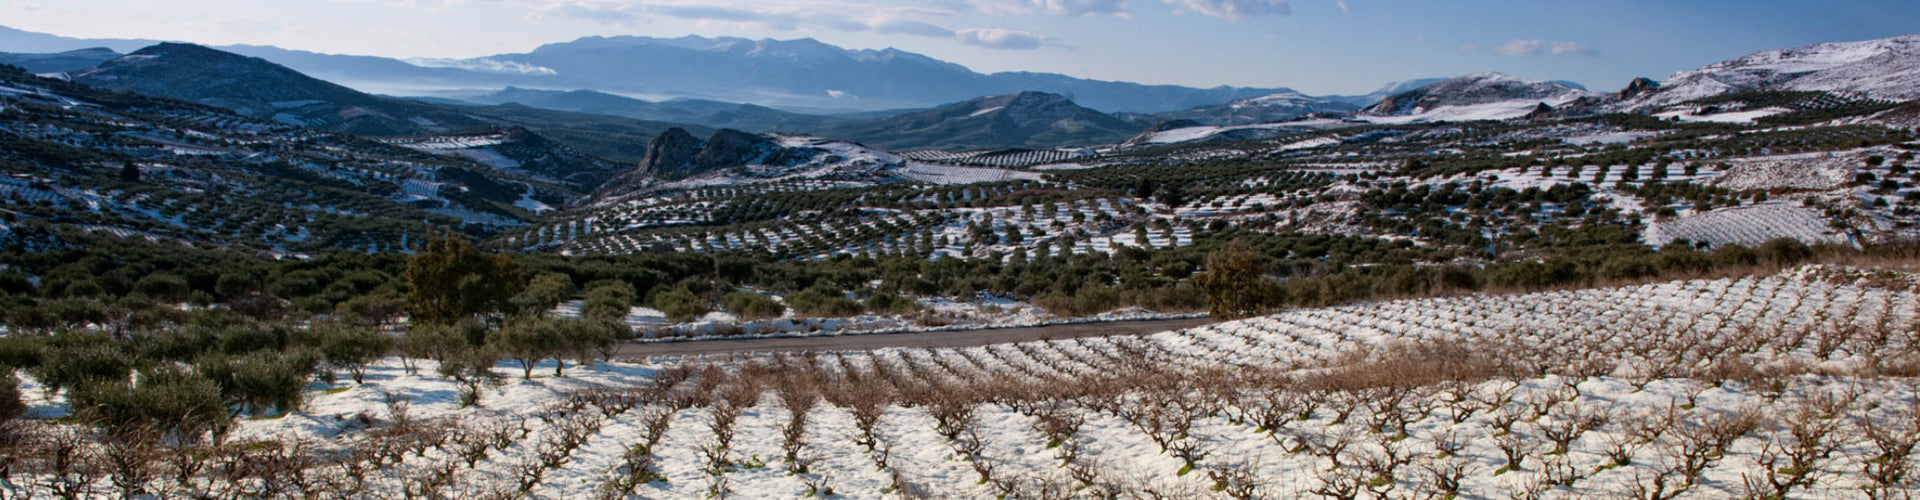 Lyrarakis Vineyards in Crete covered in Snow